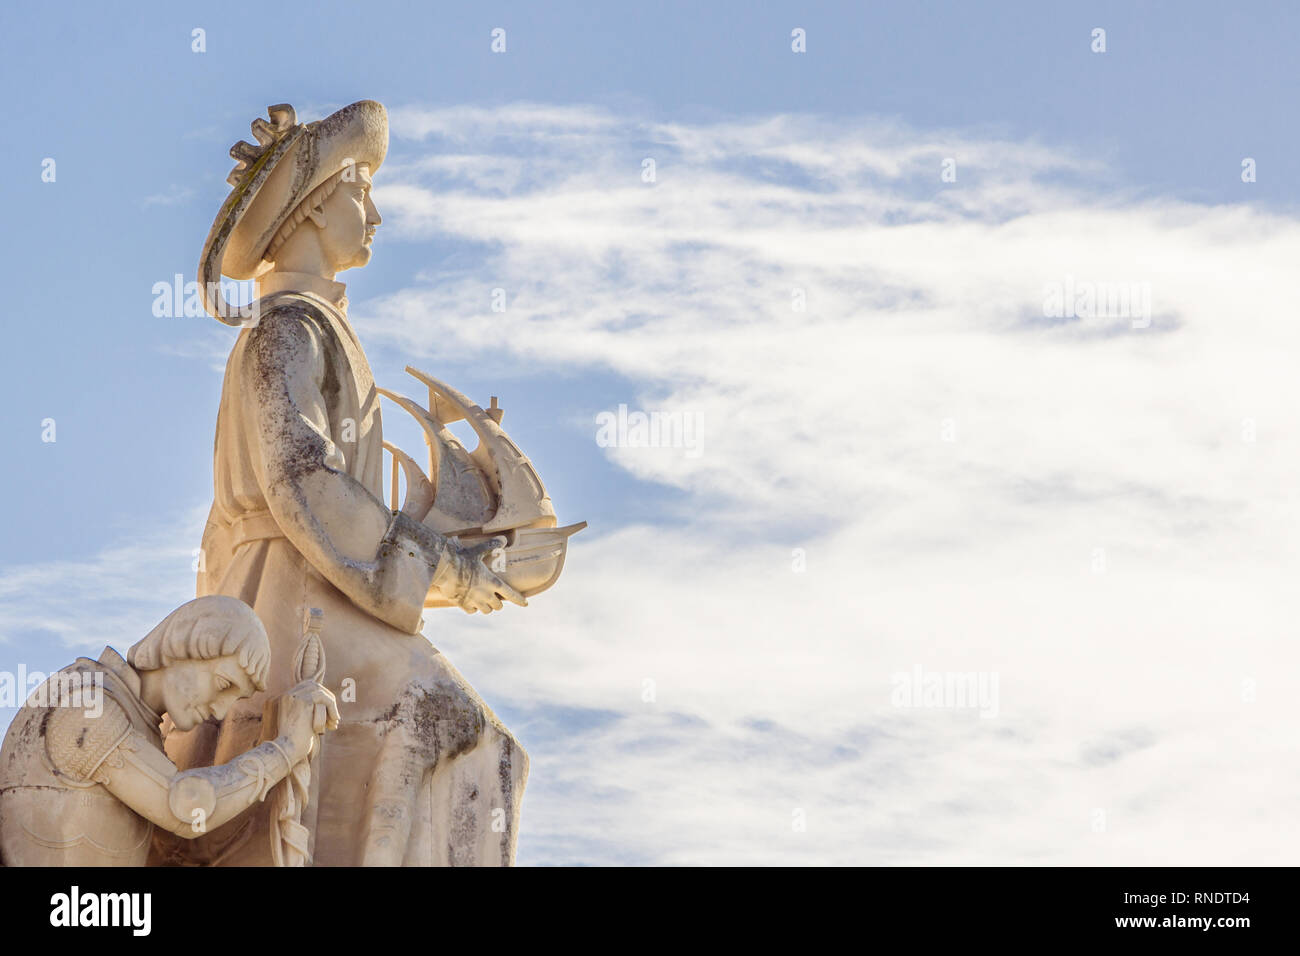 Monument of the Discoveries, Lisbon, Portugal. Monument built for the portuguese world exhibition of 1940. - Stock Image